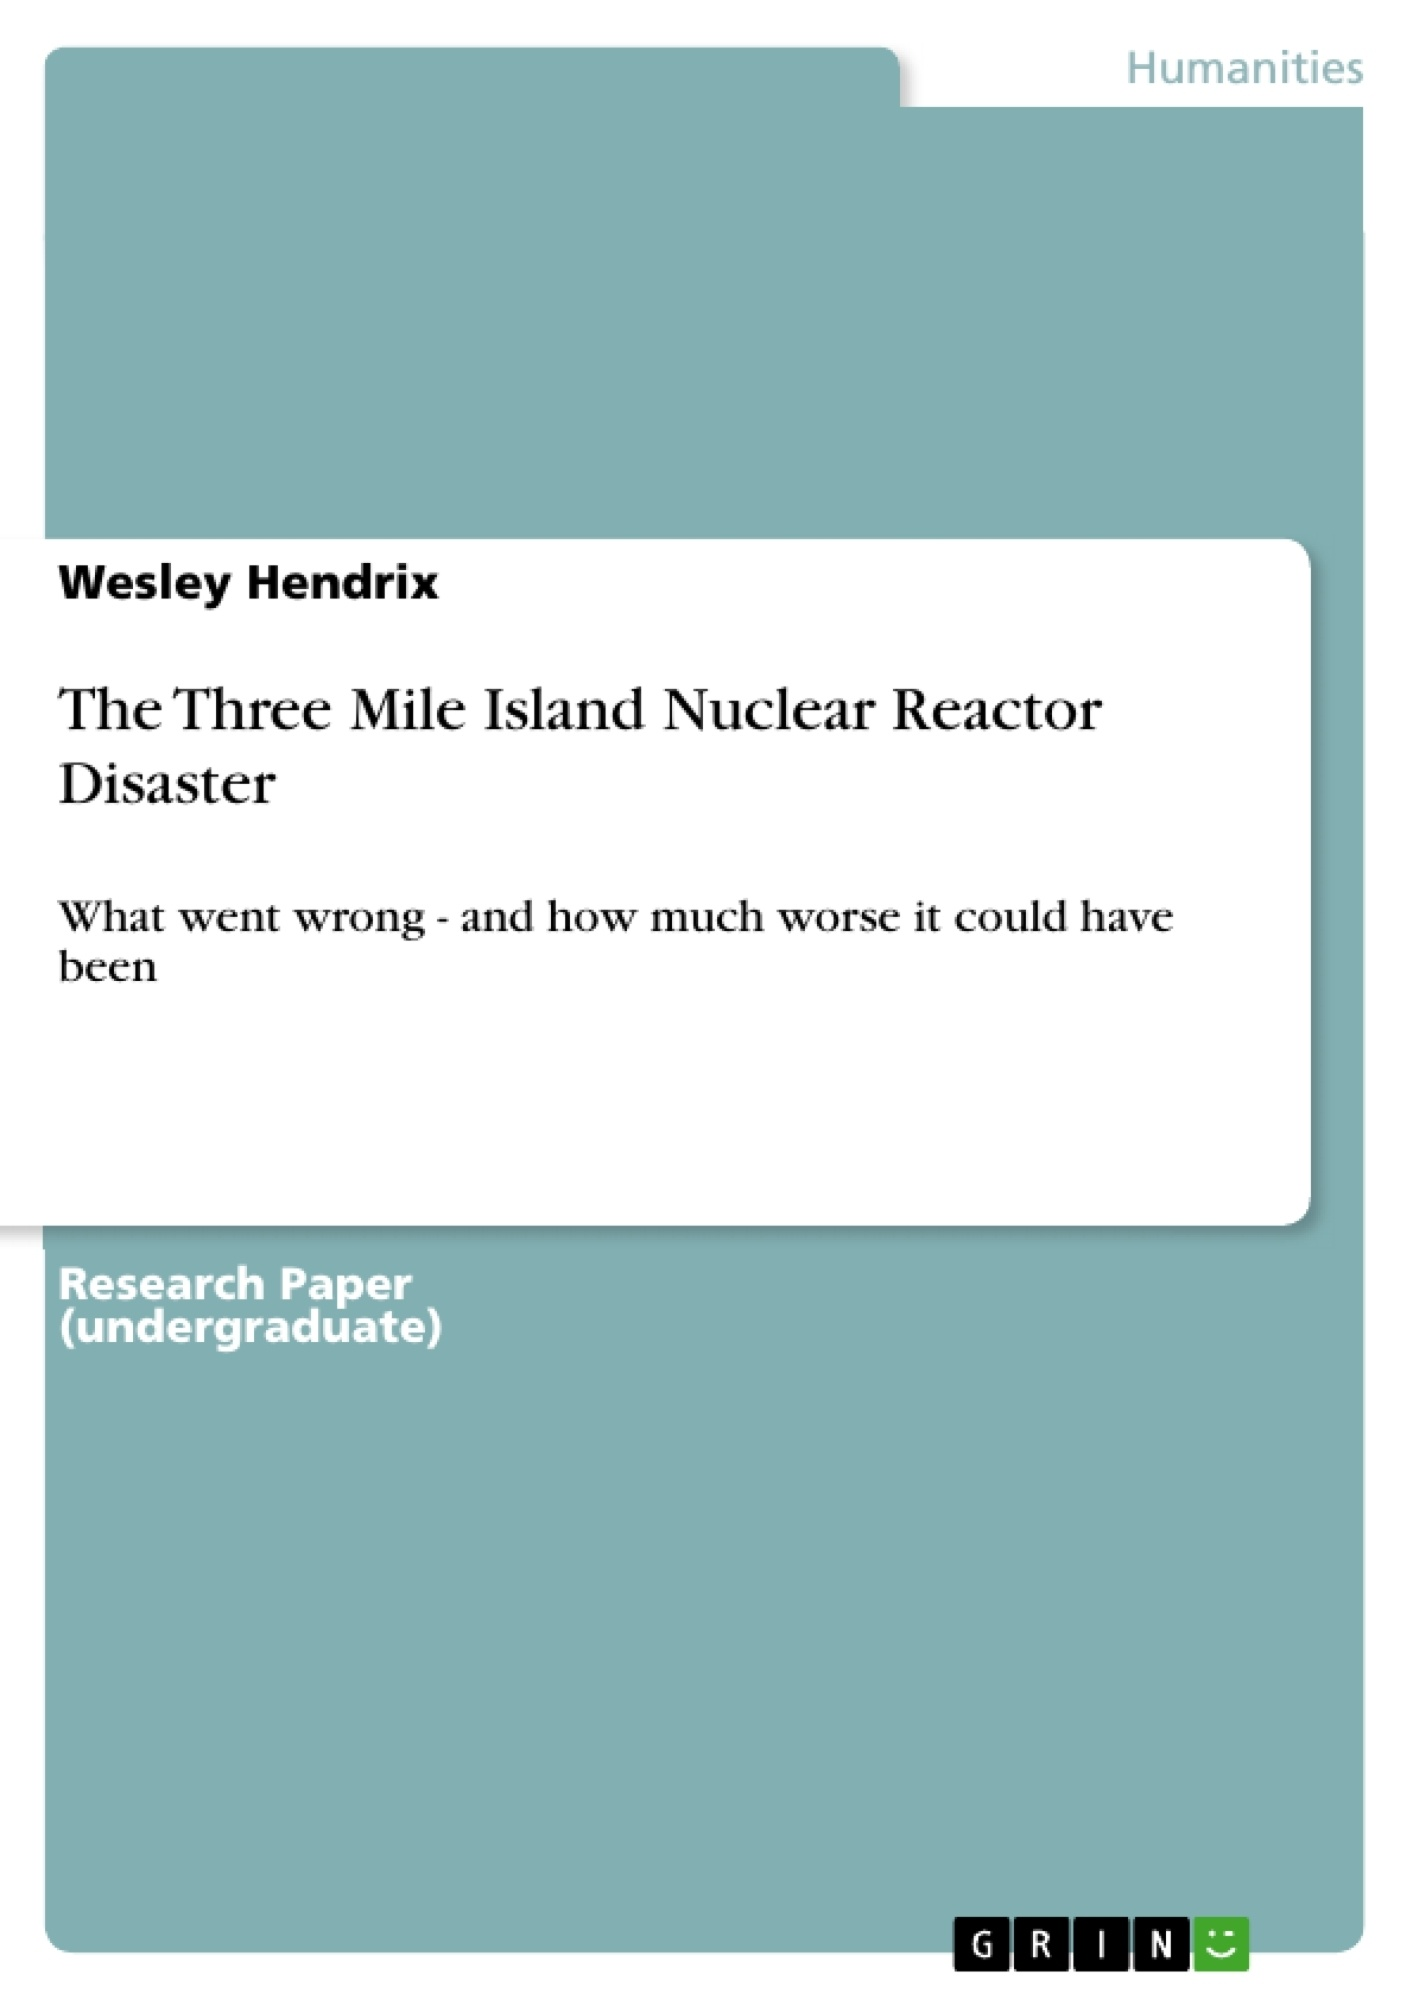 GRIN - The Three Mile Island Nuclear Reactor Disaster